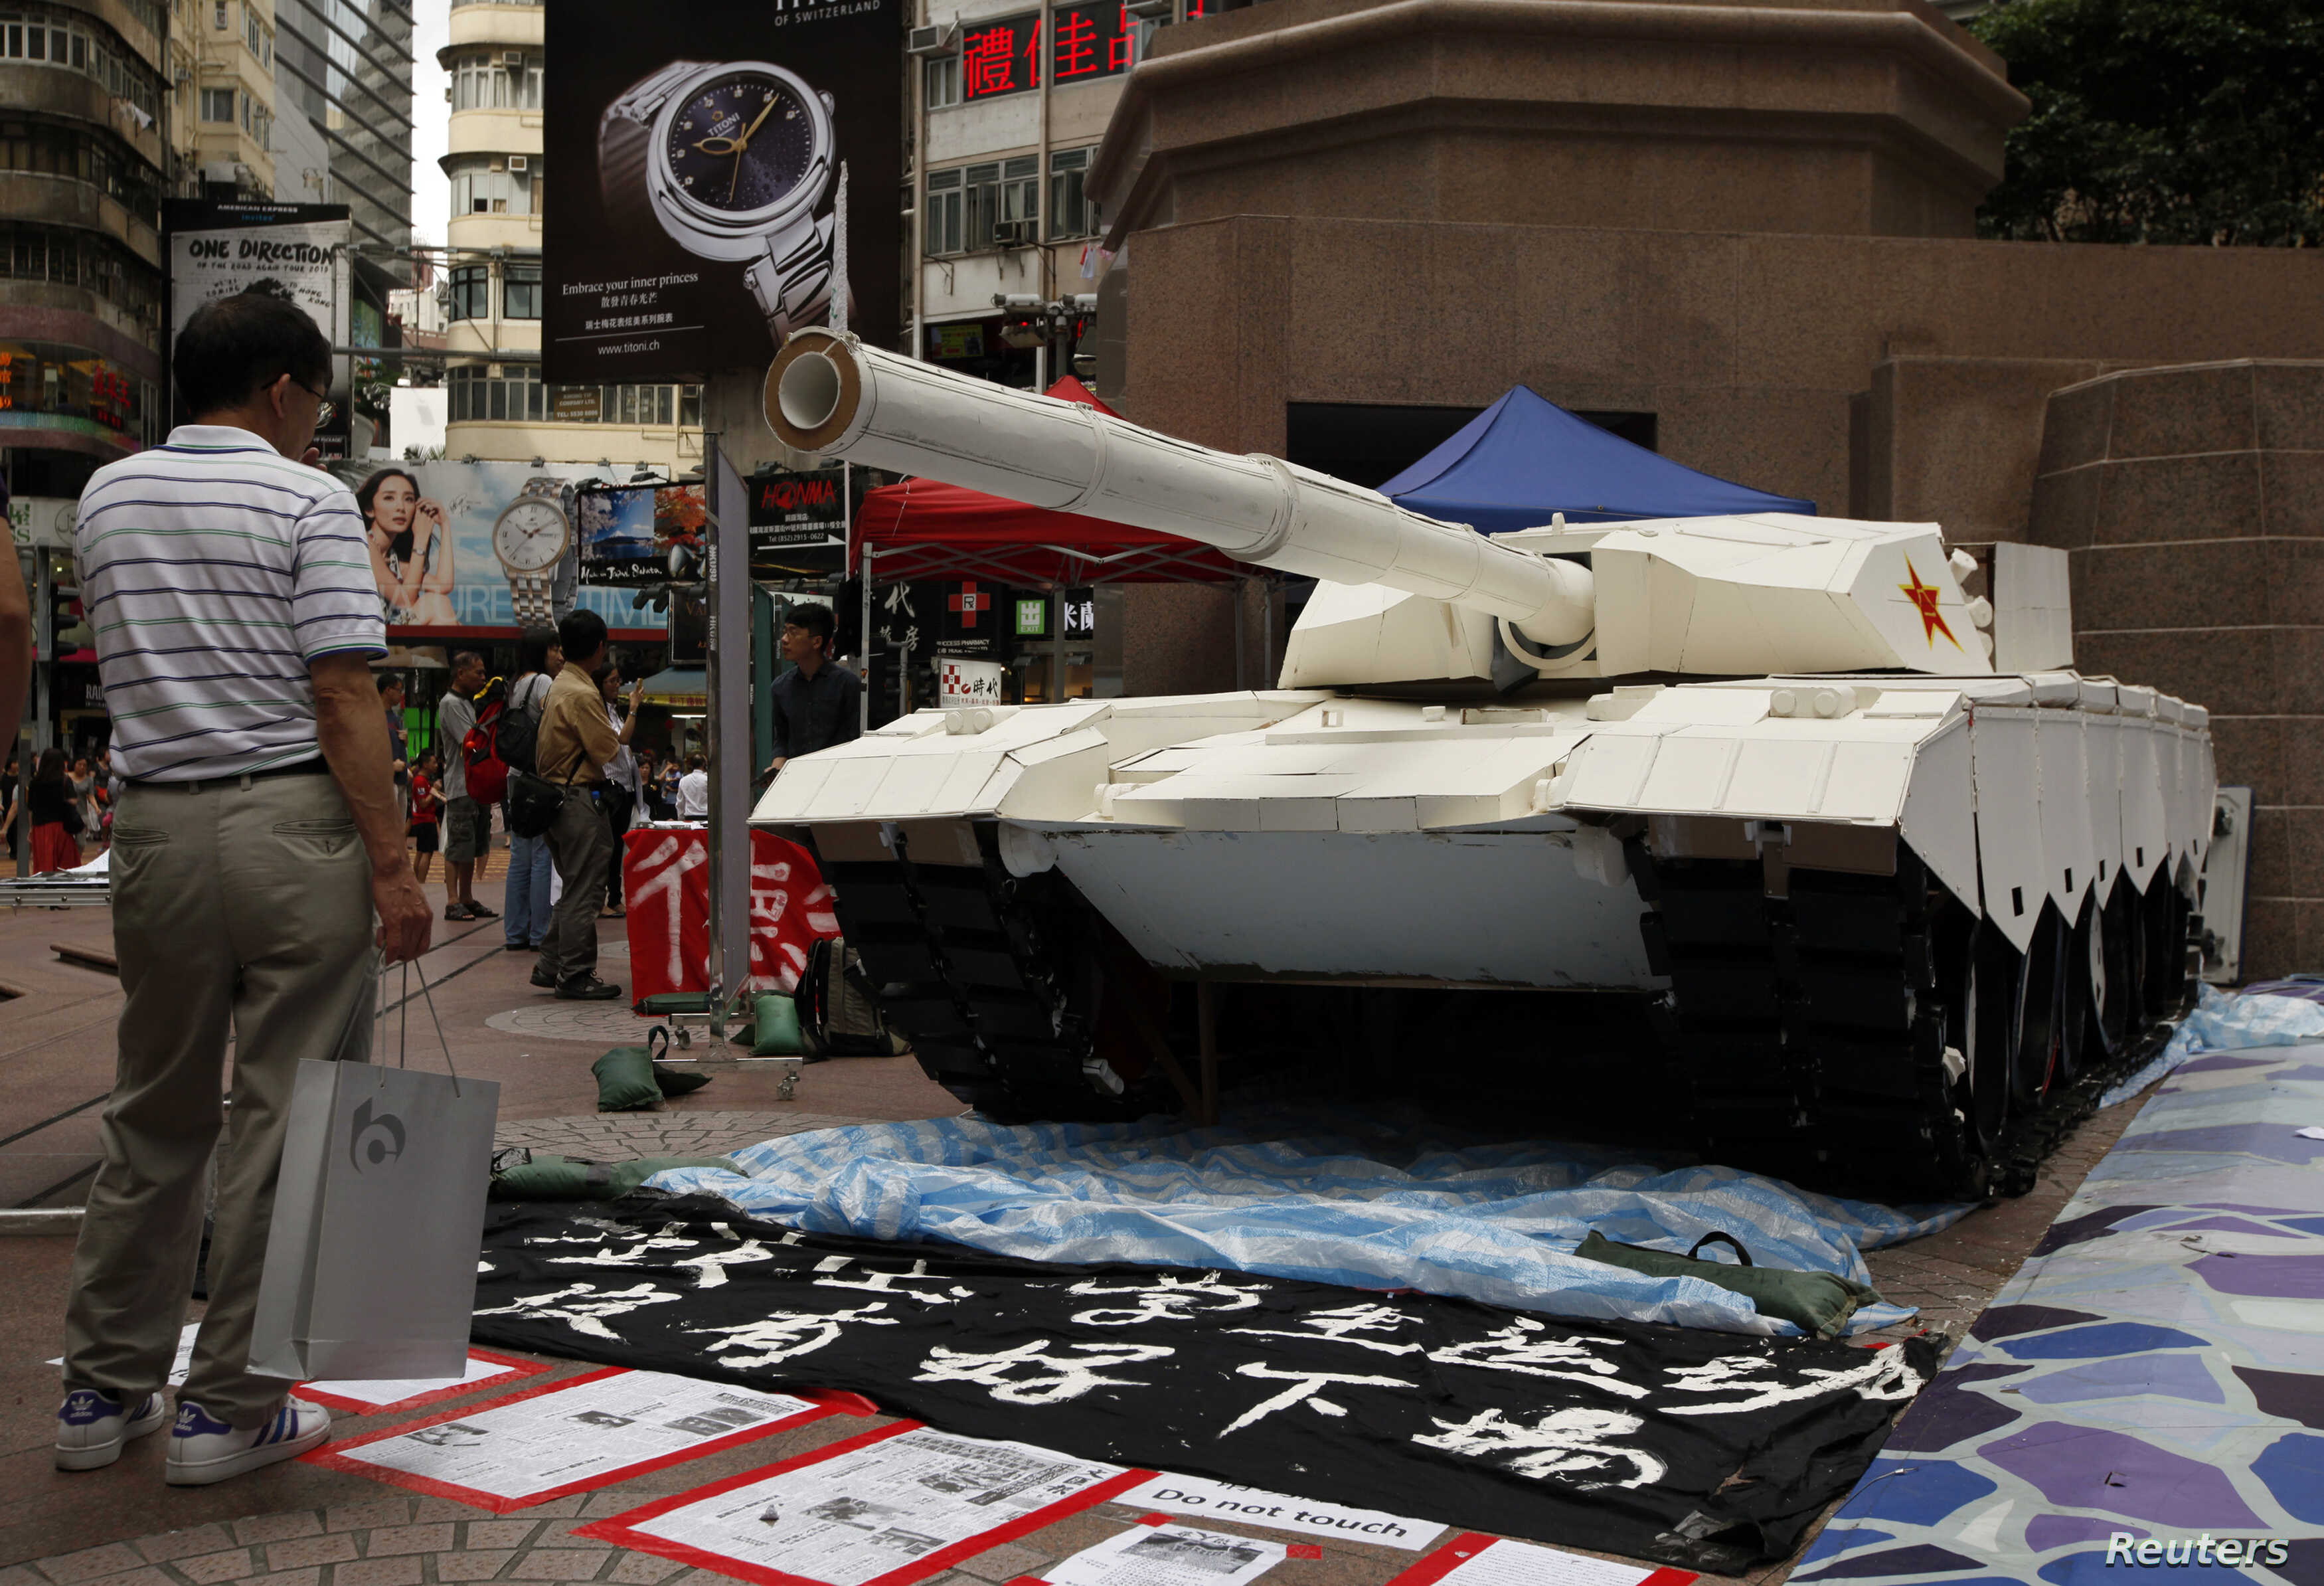 A shopper in Hong Kong stands in front of a model tank made by university students to remember the crackdown in Tiananmen Square, June 3, 2014.